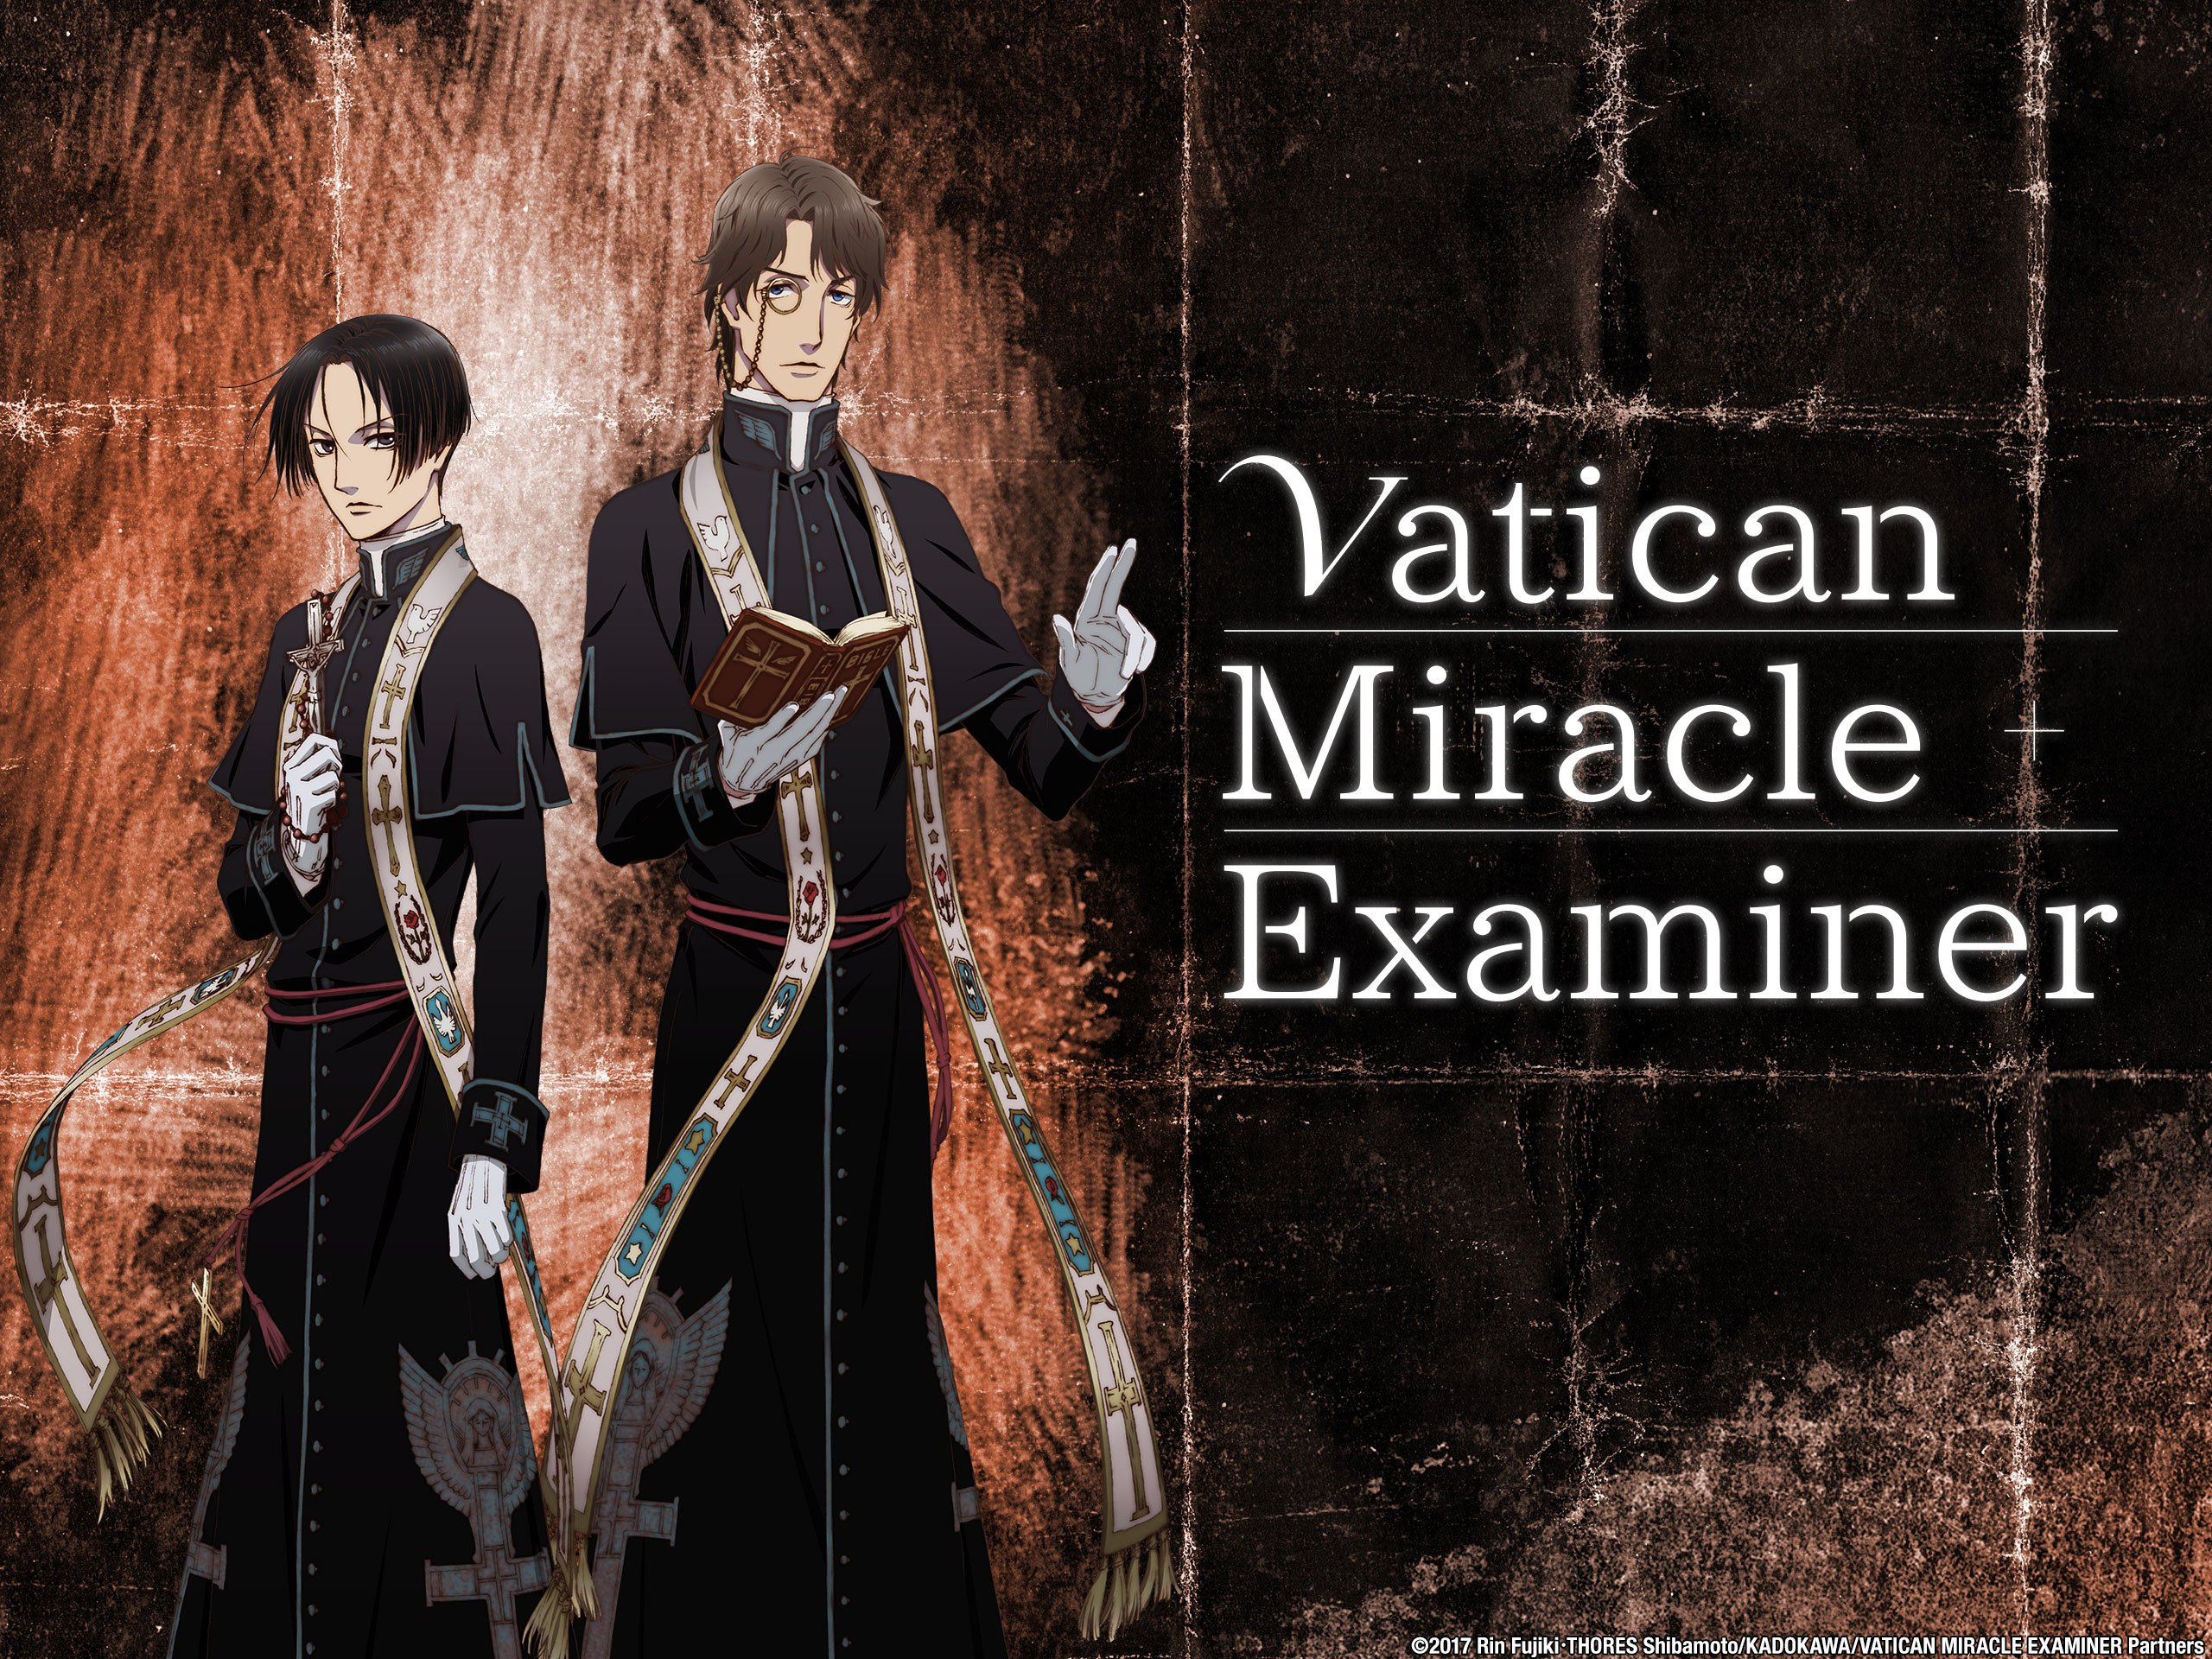 Image result for Vatican Miracle Examiner